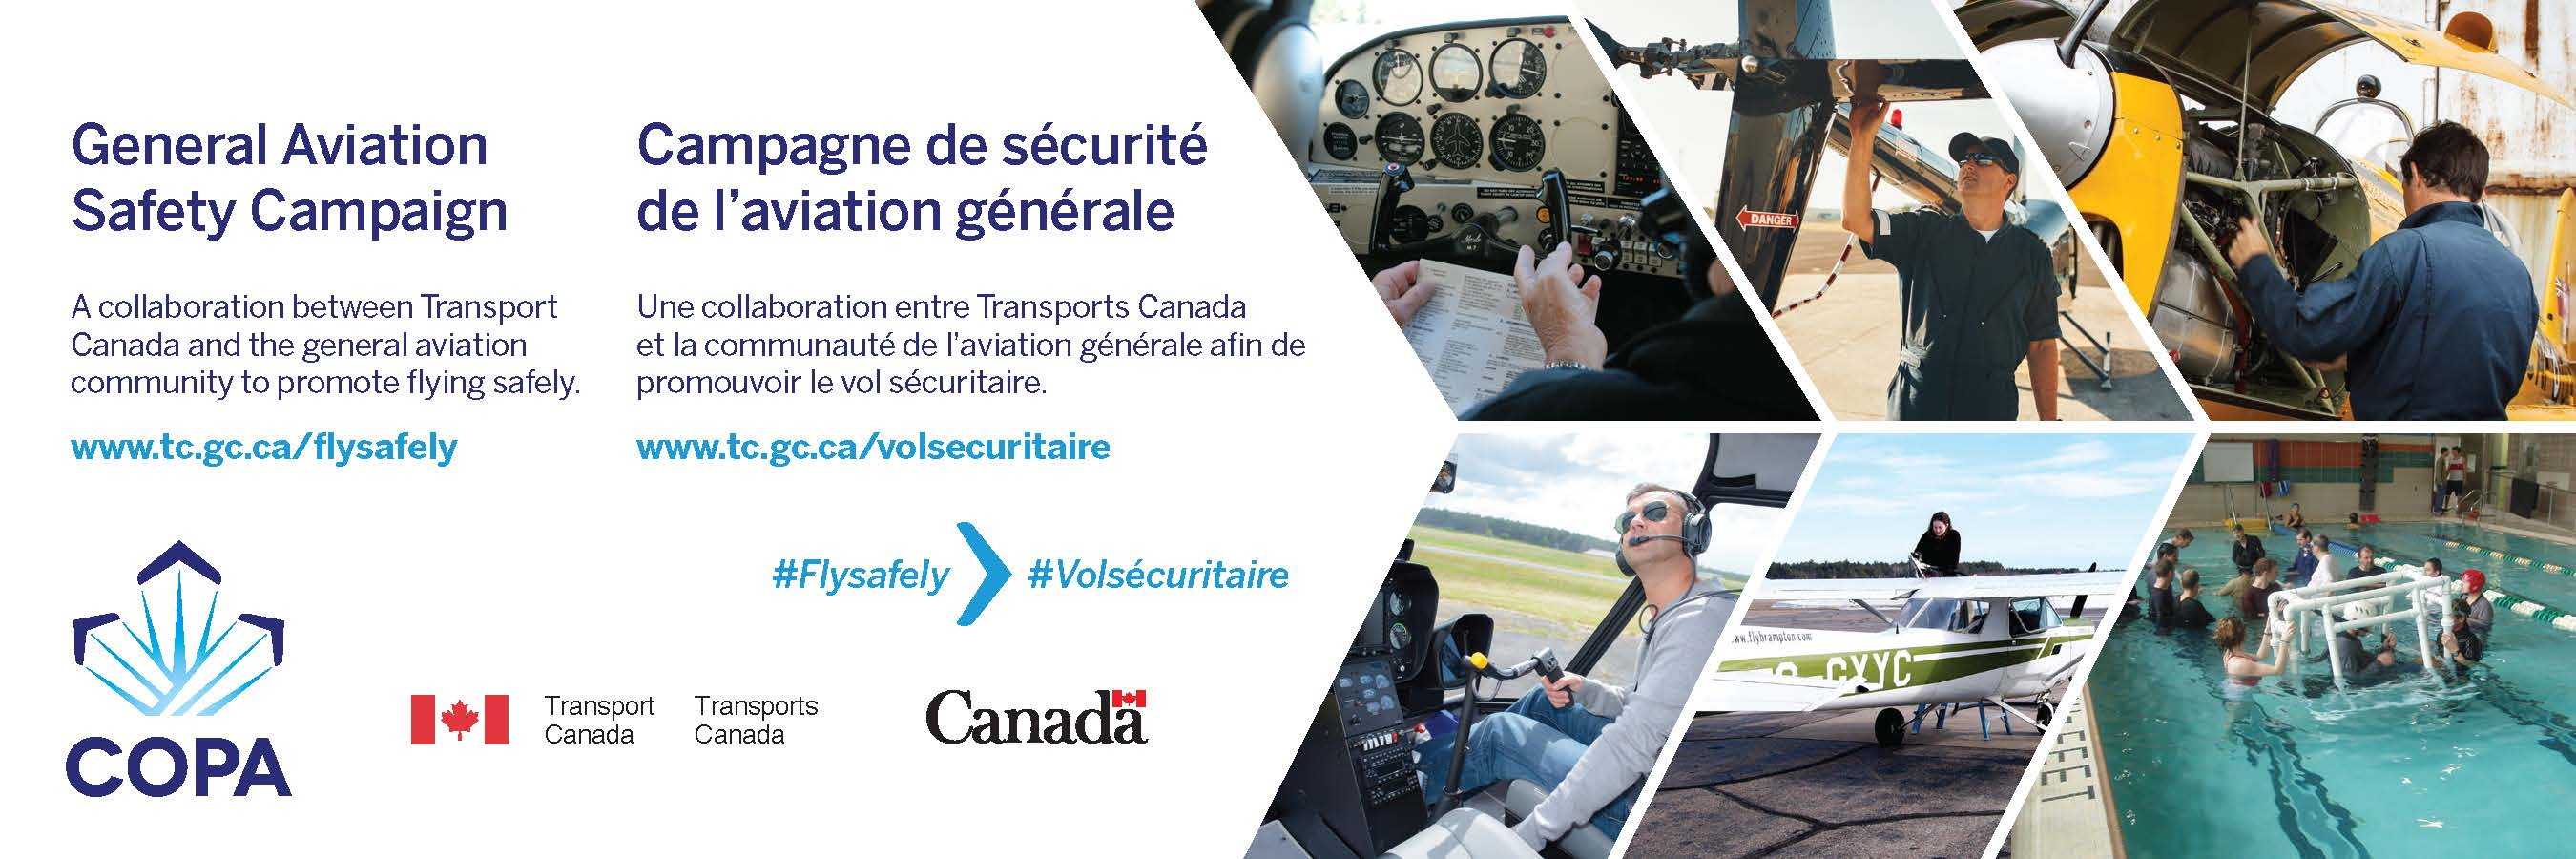 General Aviation Safety Campaign   COPA